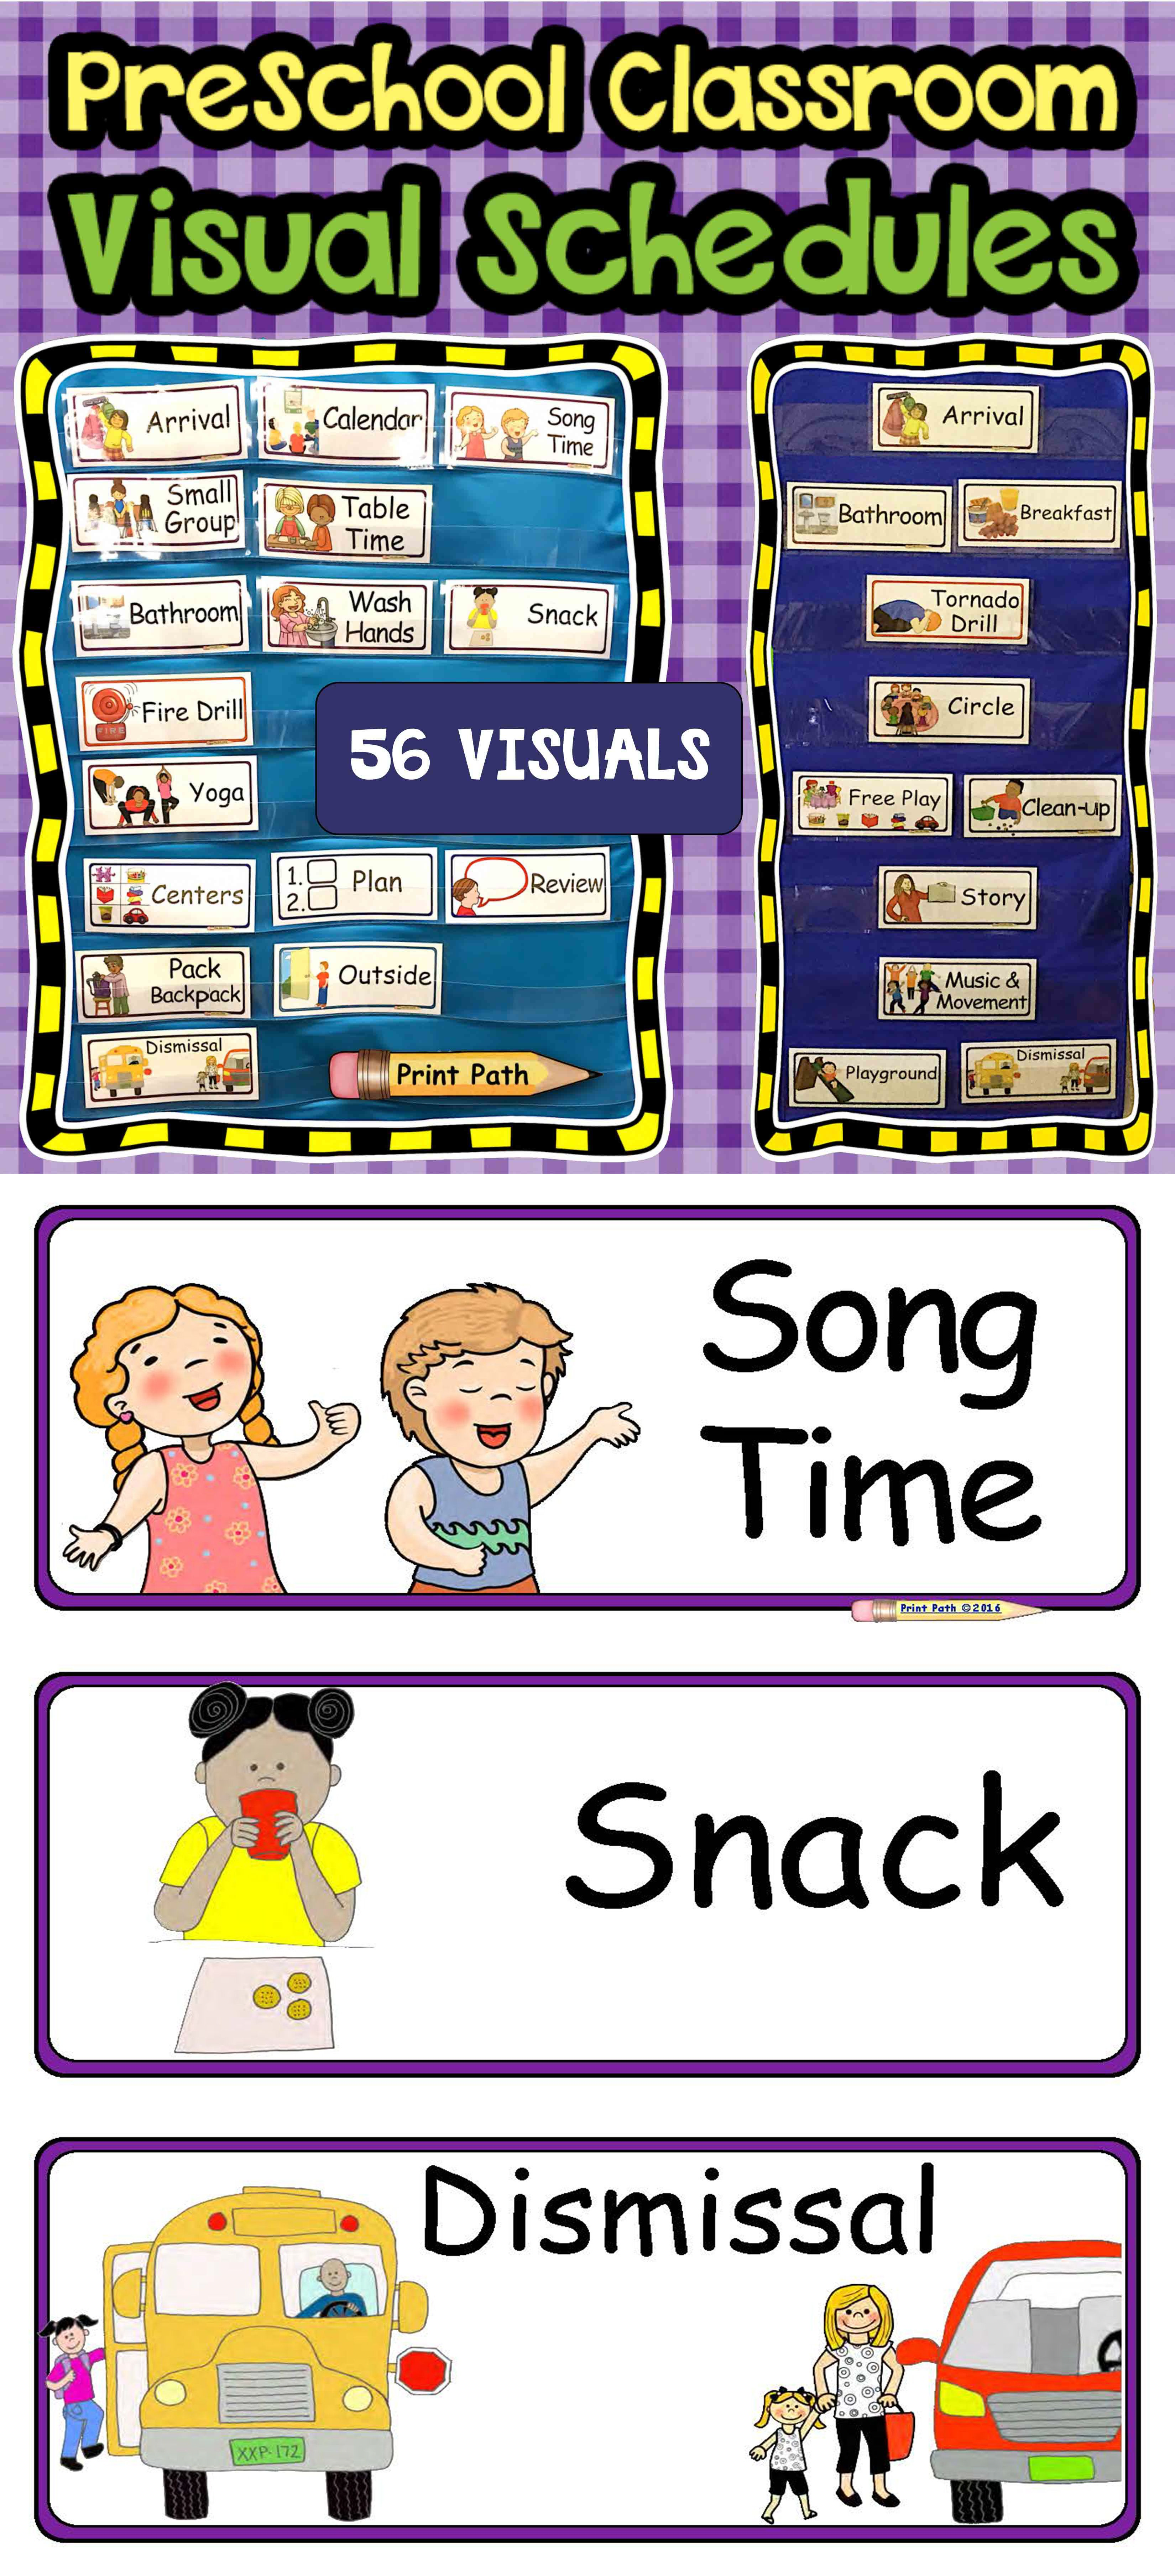 Invaluable image intended for free printable classroom labels for preschoolers